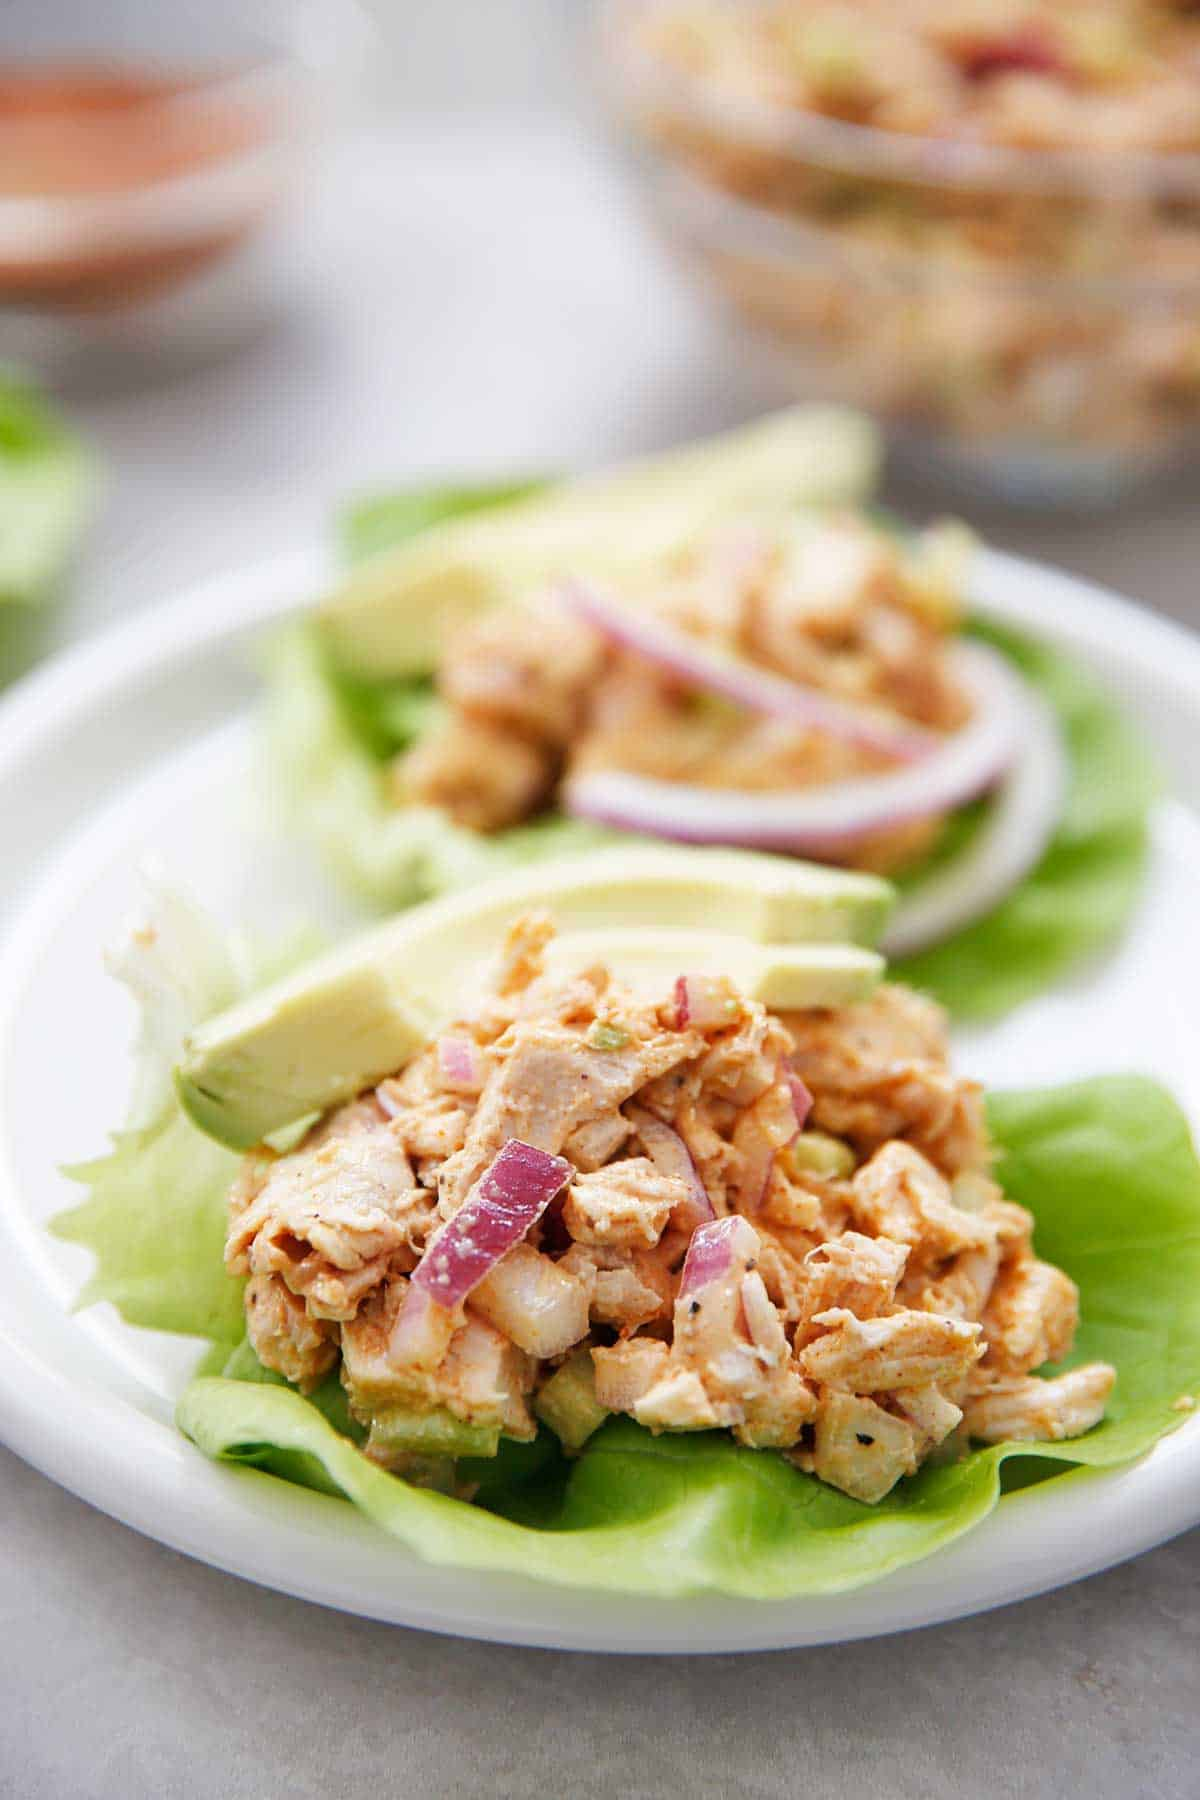 Smoky Chicken Salad lettuce wraps with avocado